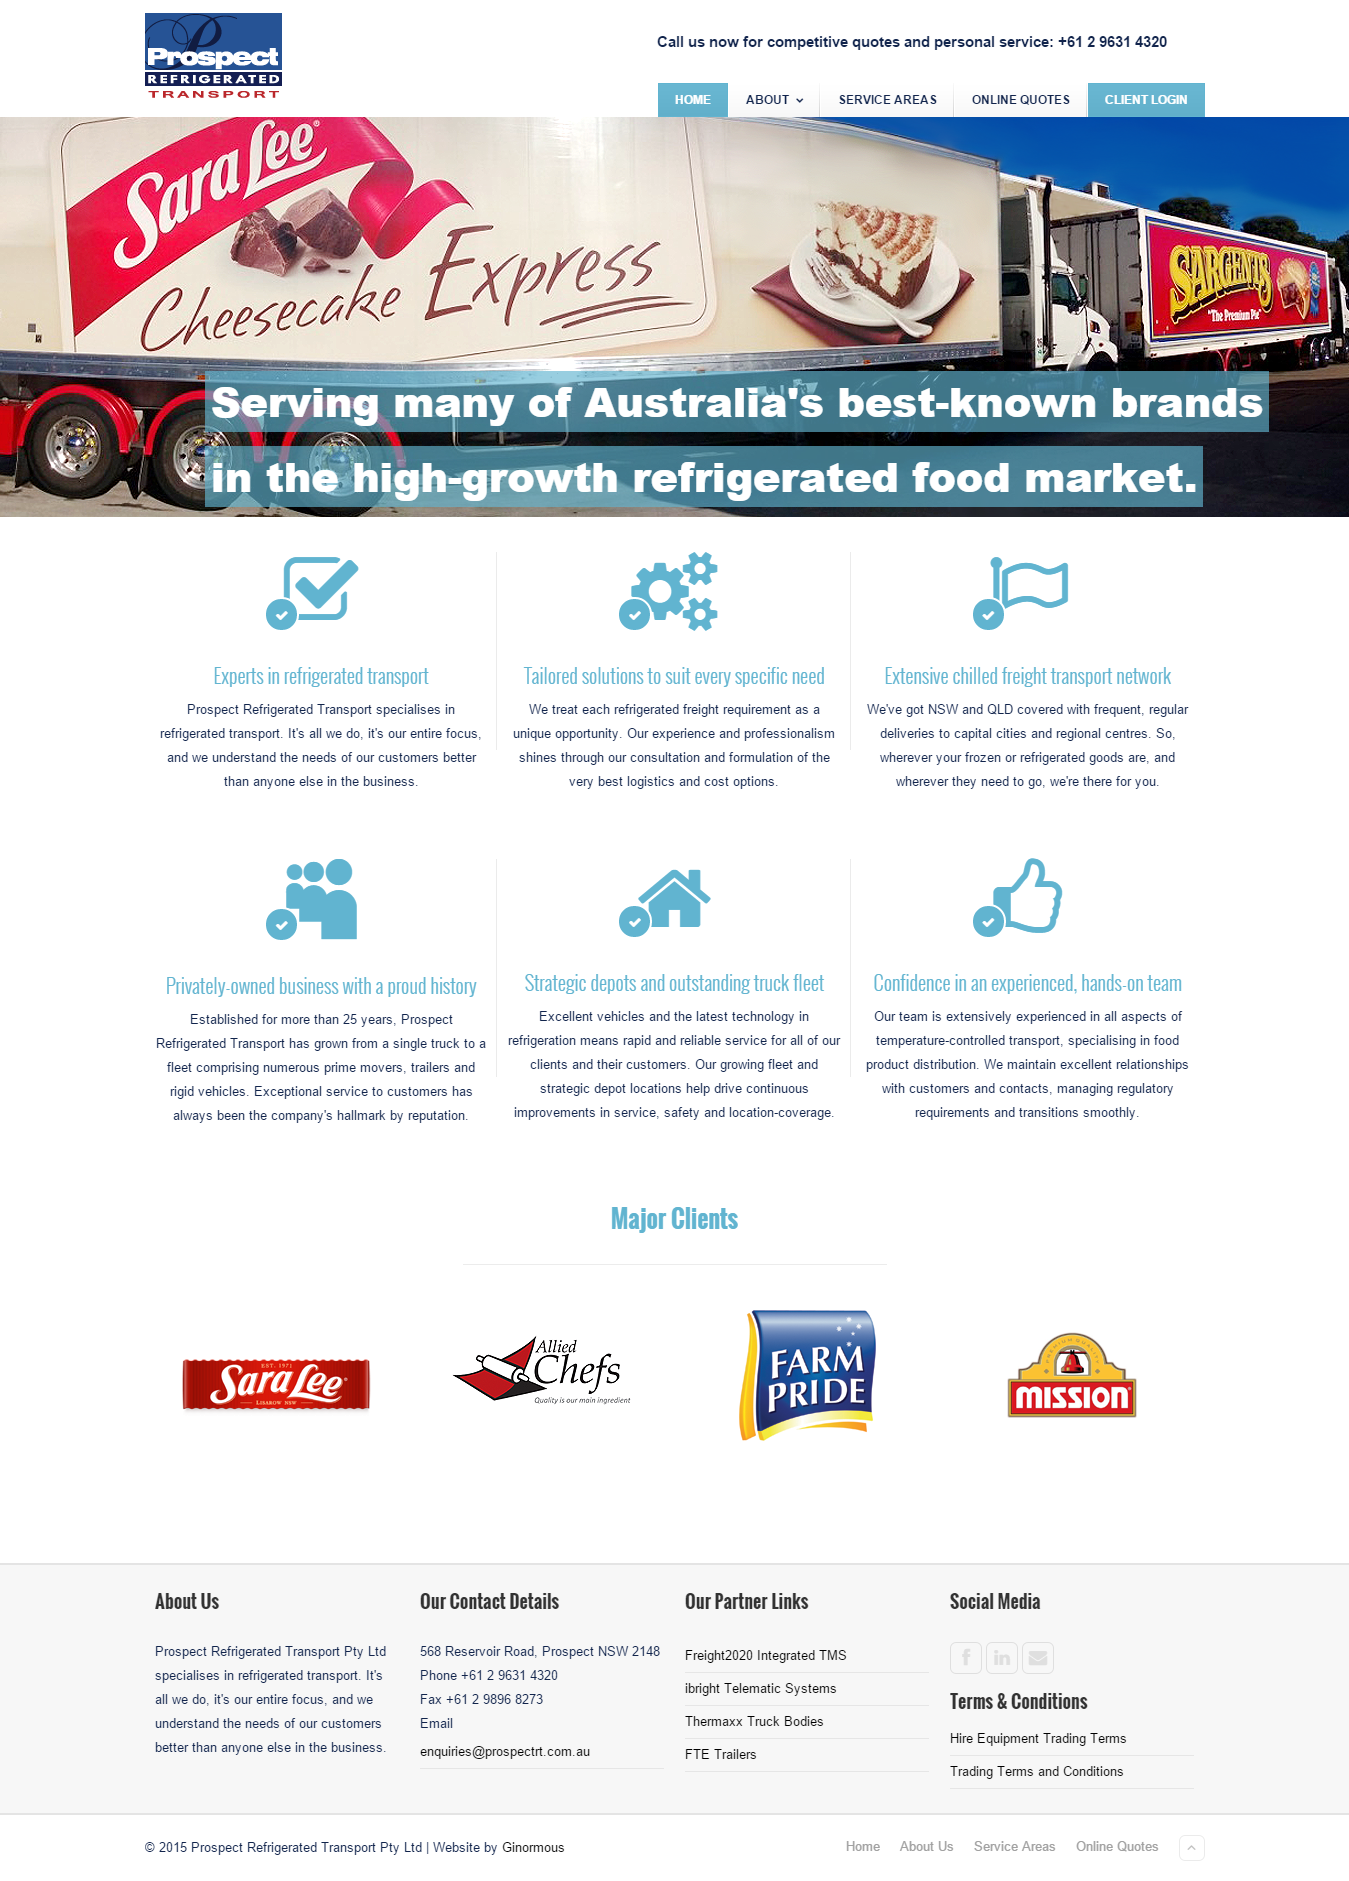 Website design for refrigerated transport company, PRT